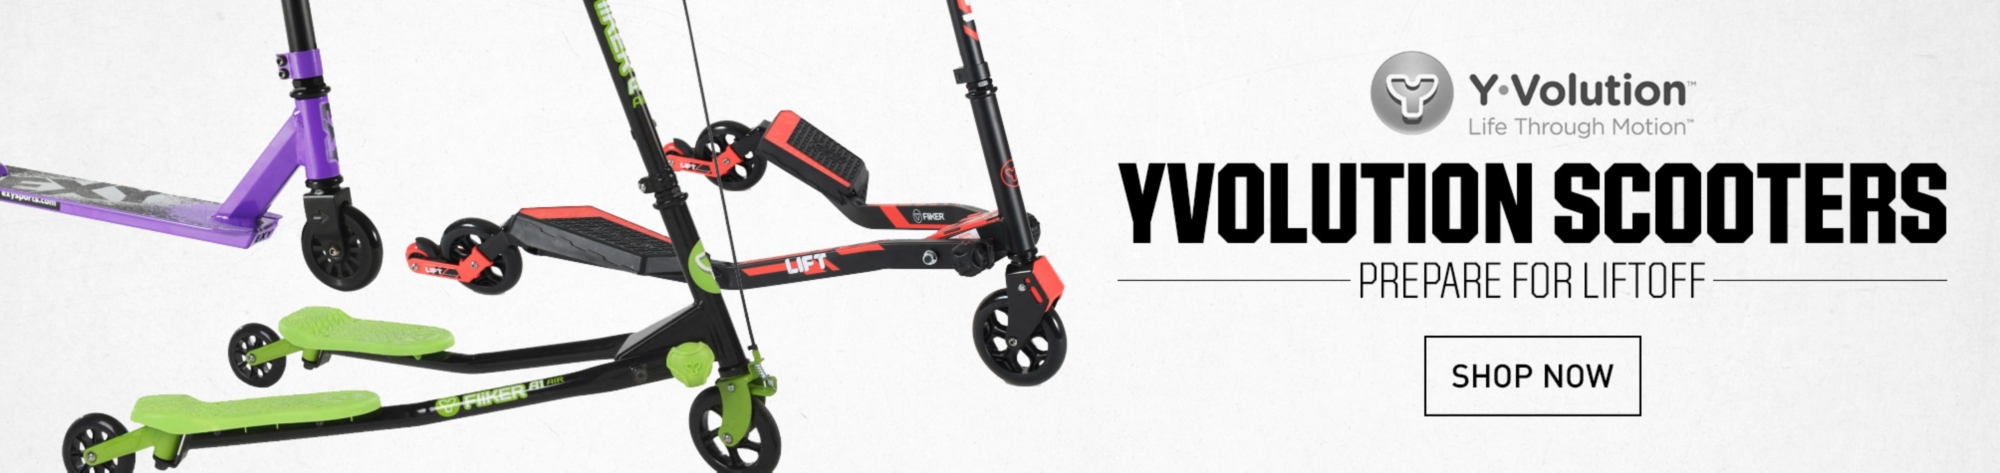 Shop Yvolution Scooters